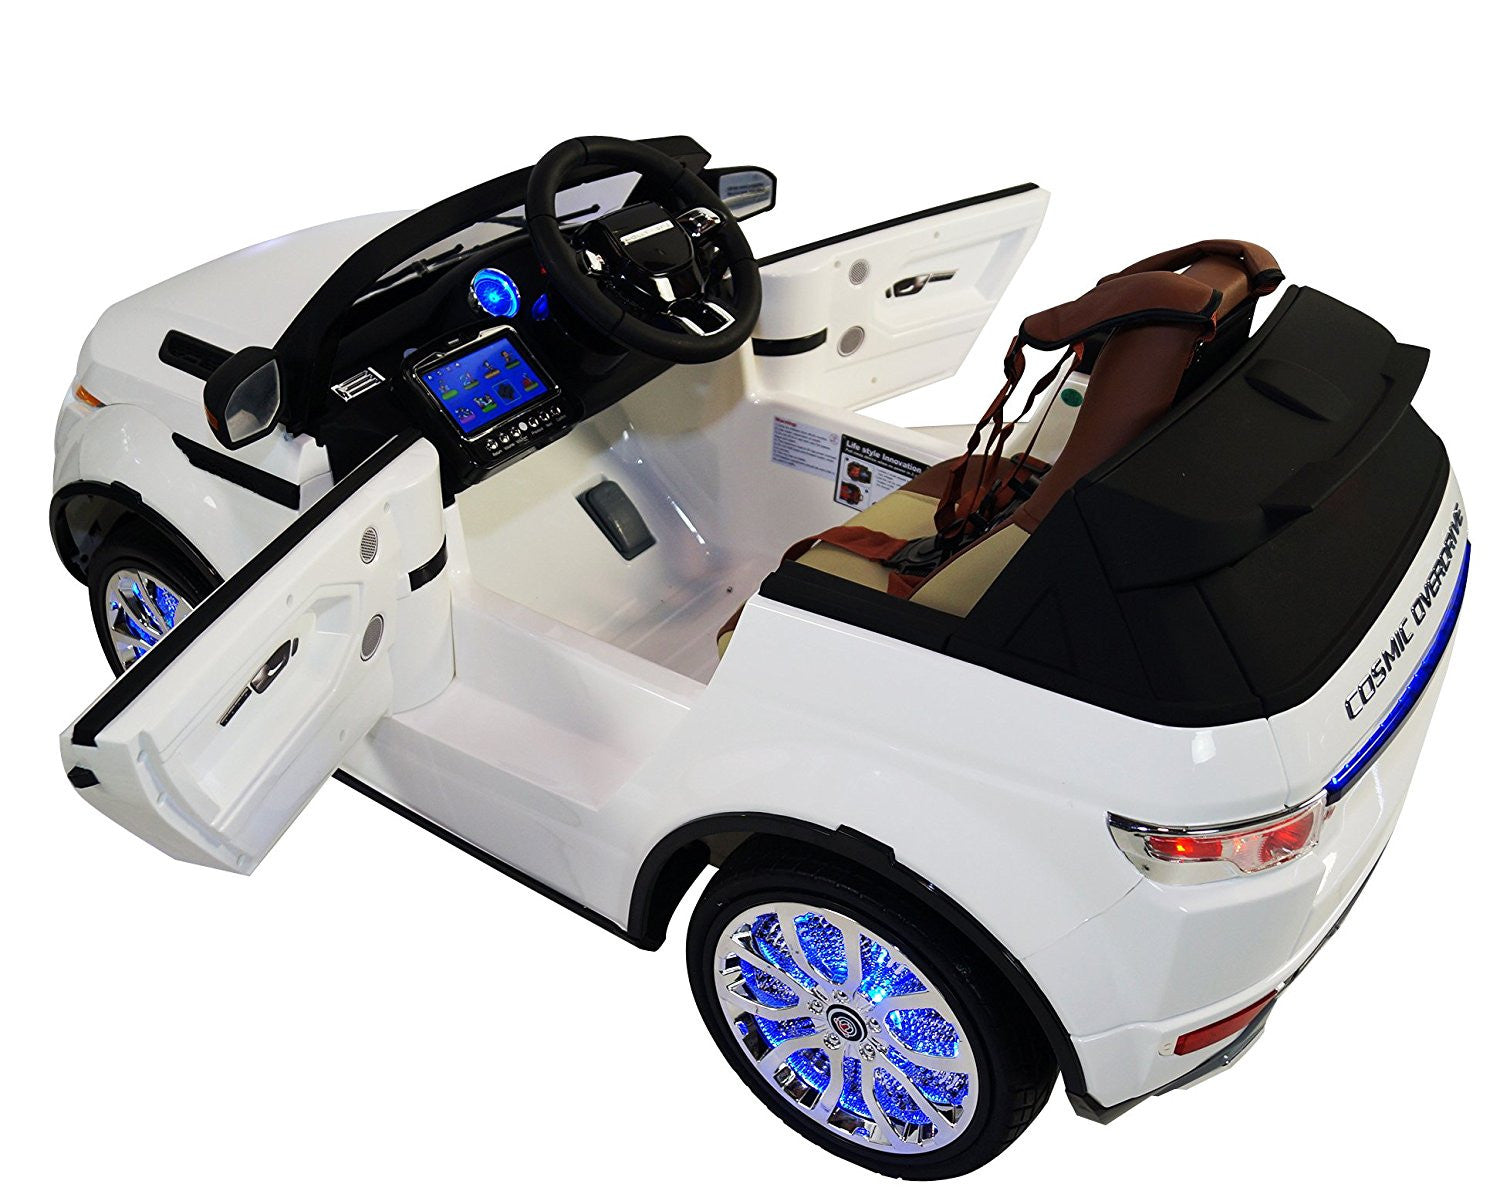 Range Rover Style Premium Ride On Electric Toy Car Toys System